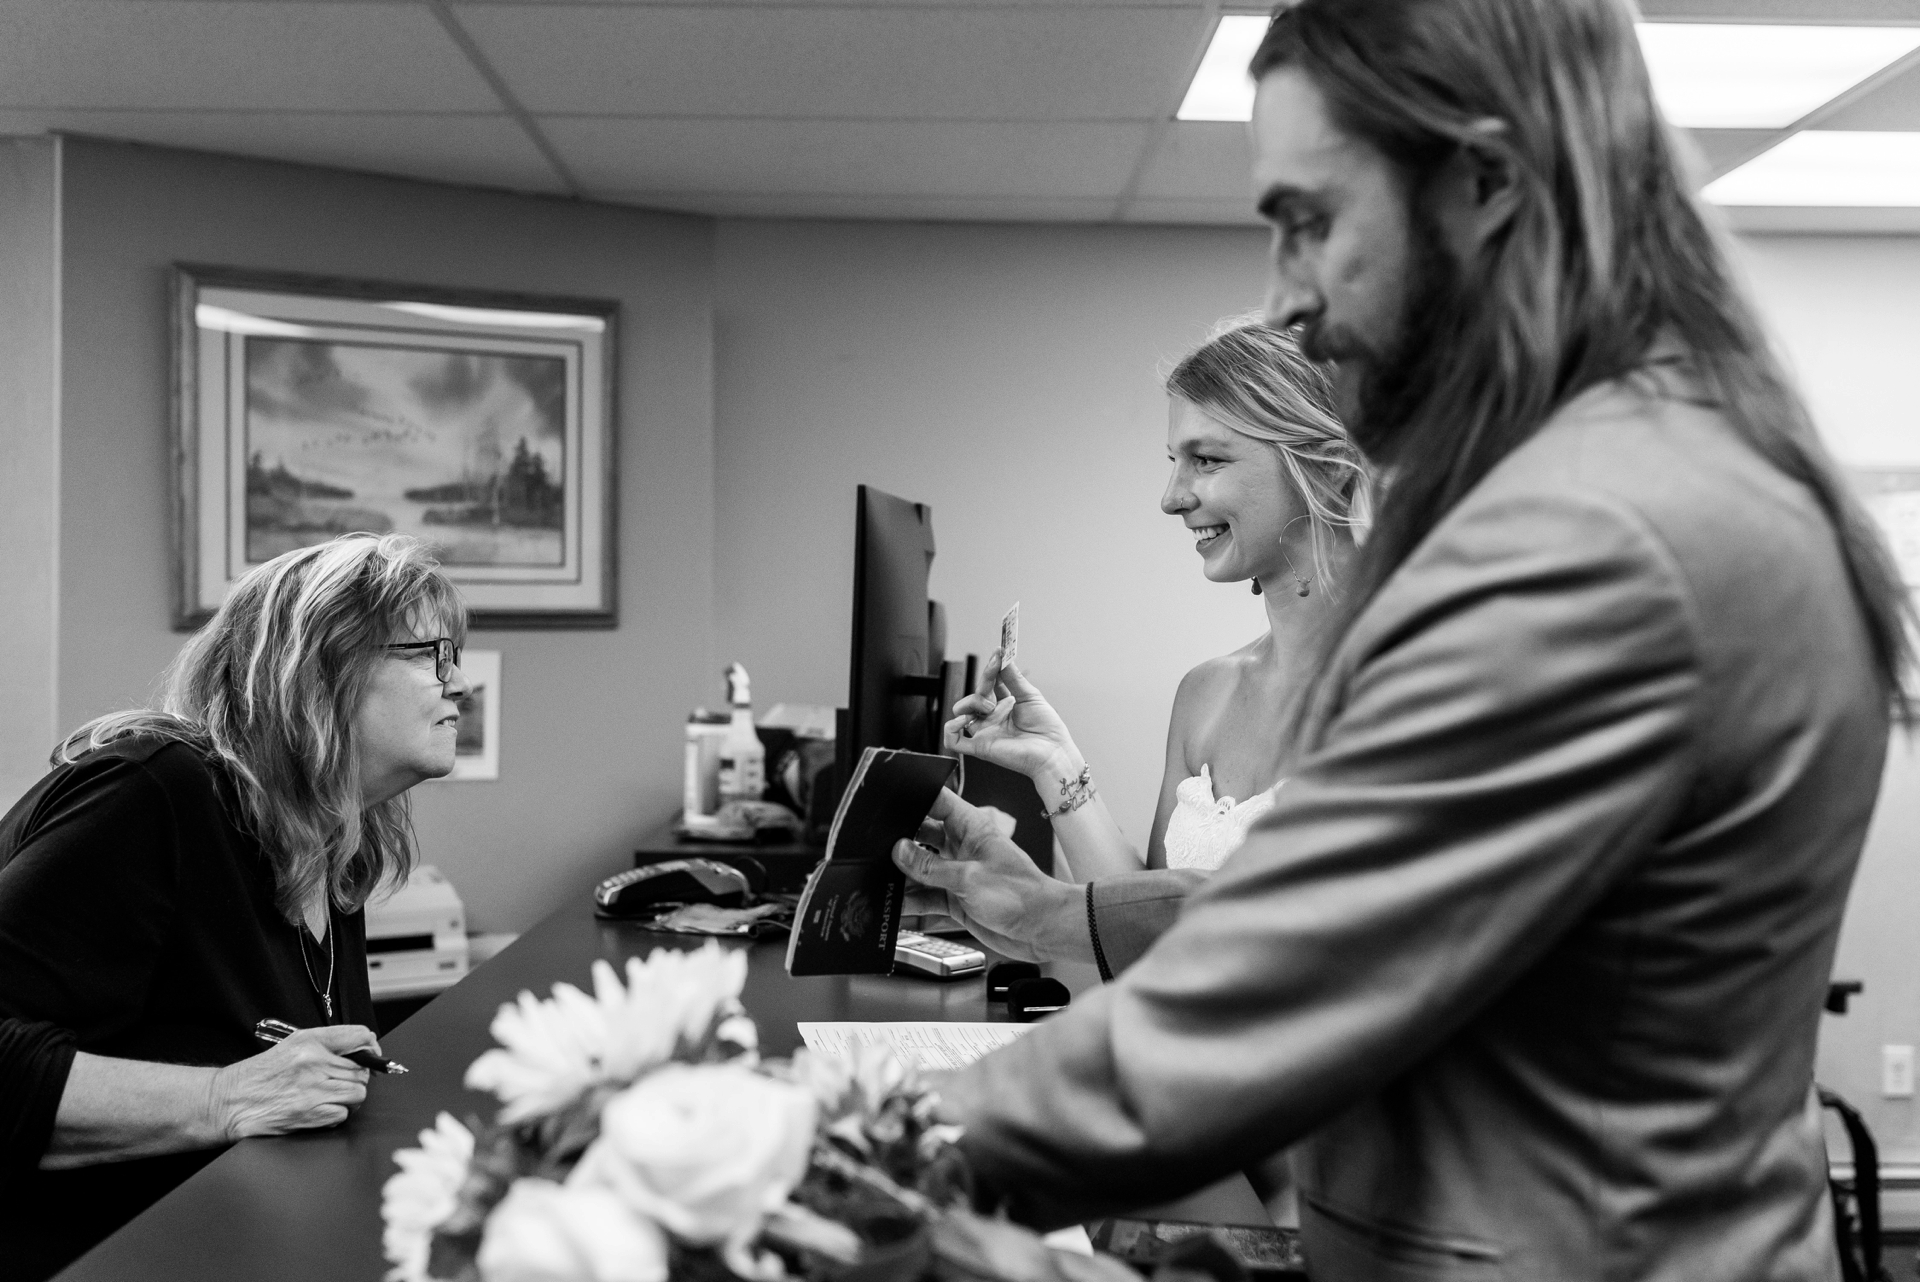 South Lake Tahoe Civil Ceremony Elopement Image | The bride and groom show their ID's to the county clerk before their civil ceremony